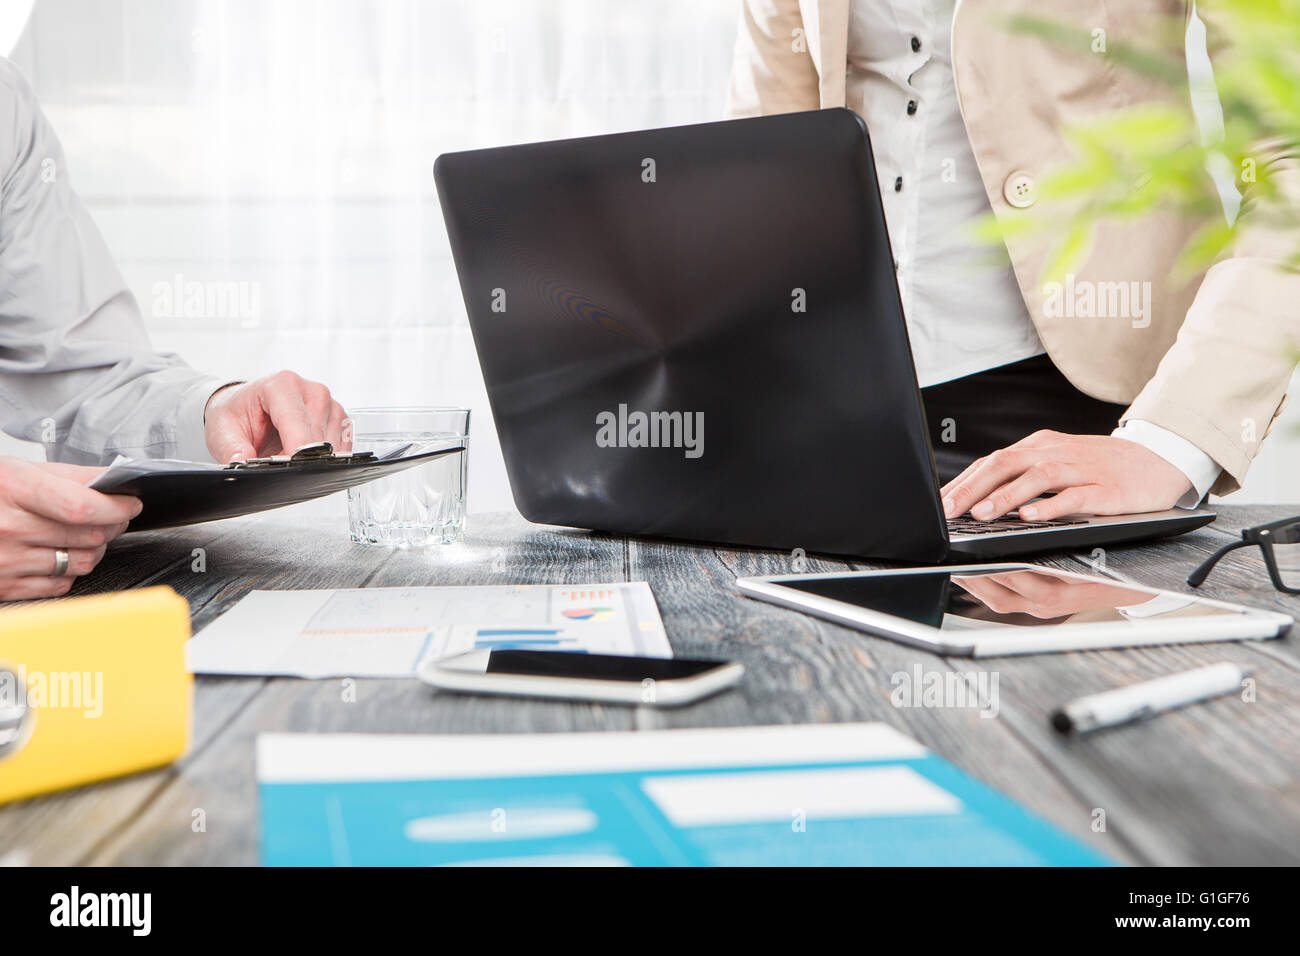 planning business career busy work laptop workplace - stock image - Stock Image